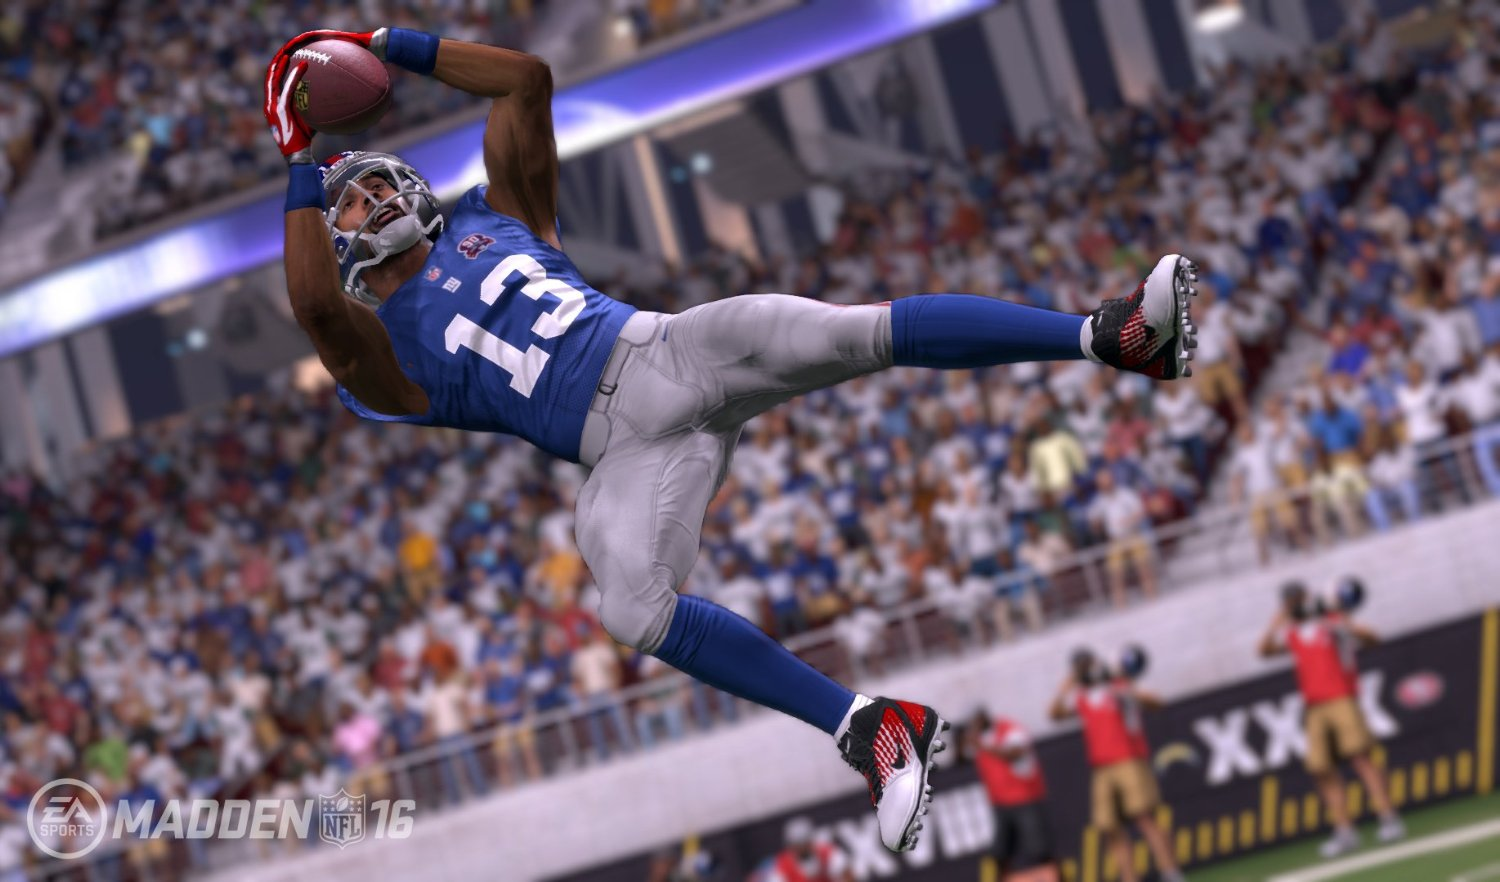 Madden NFL 16 screenshot 3868